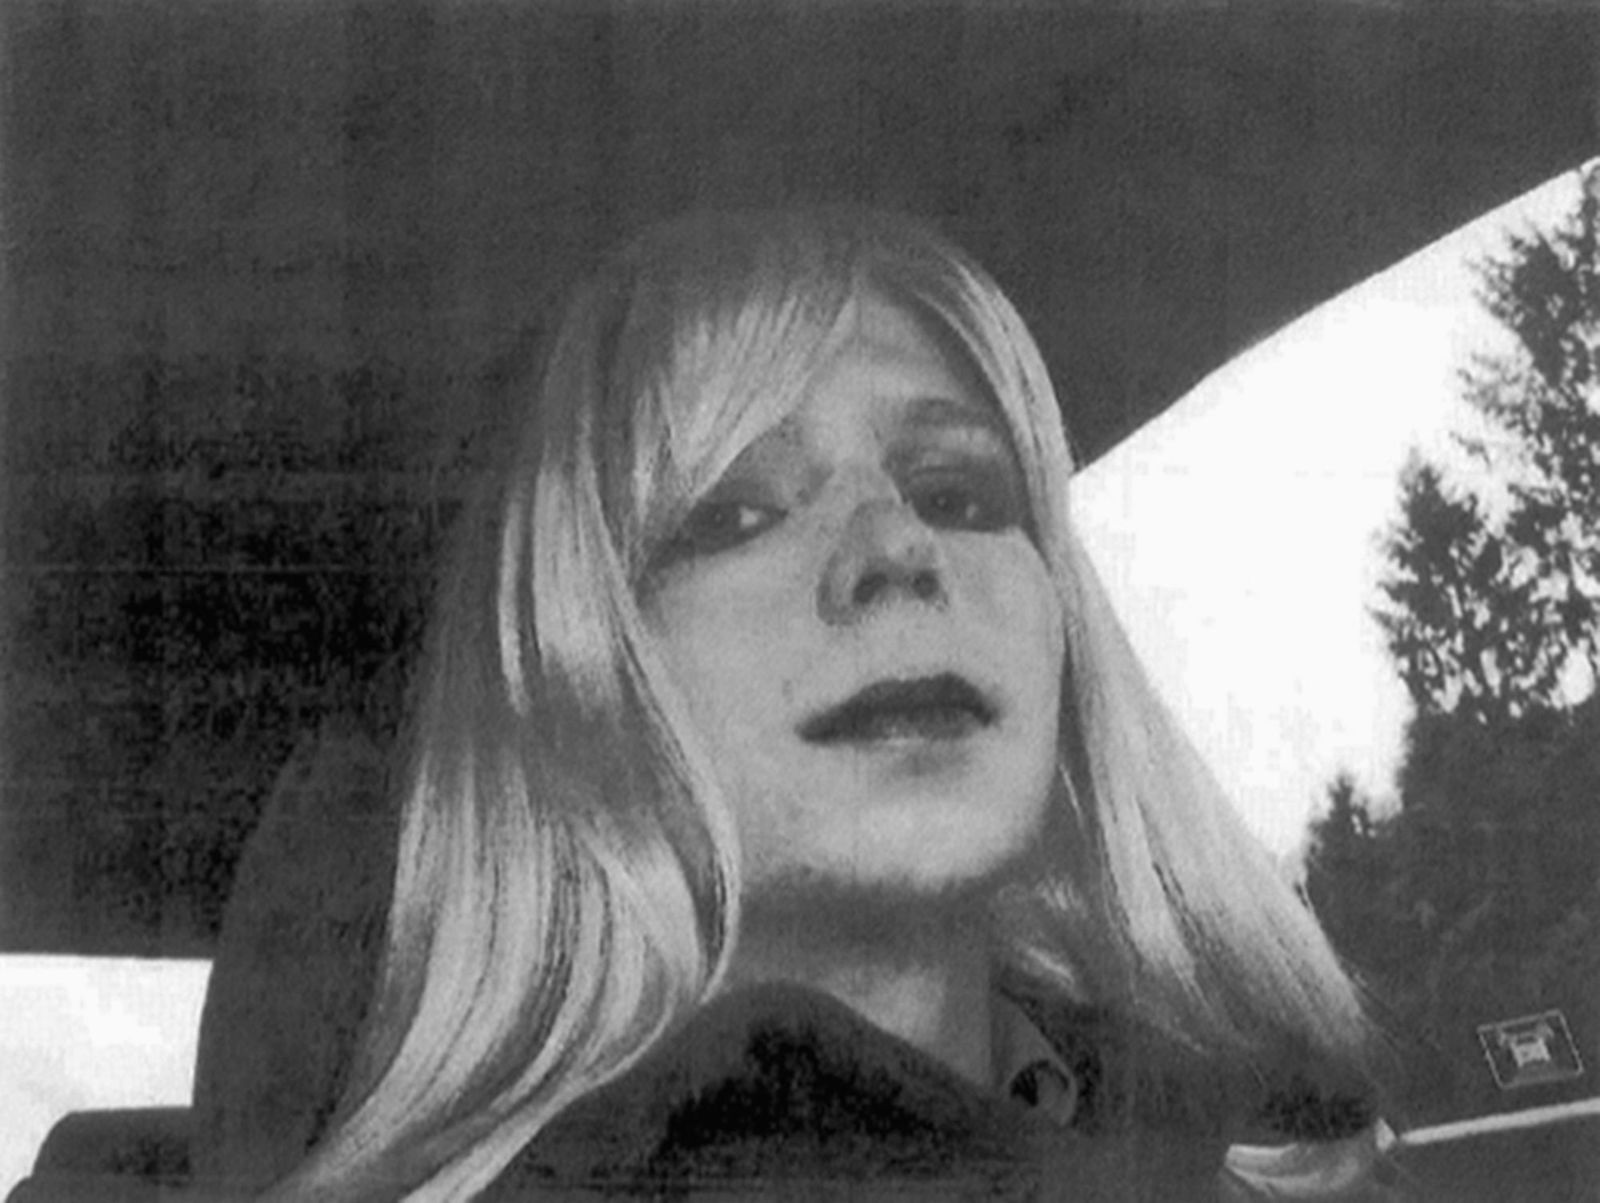 In this undated file photo provided by the U.S. Army, Pfc. Chelsea Manning poses for a photo wearing a wig and lipstick. (U.S. ARMY/AP)